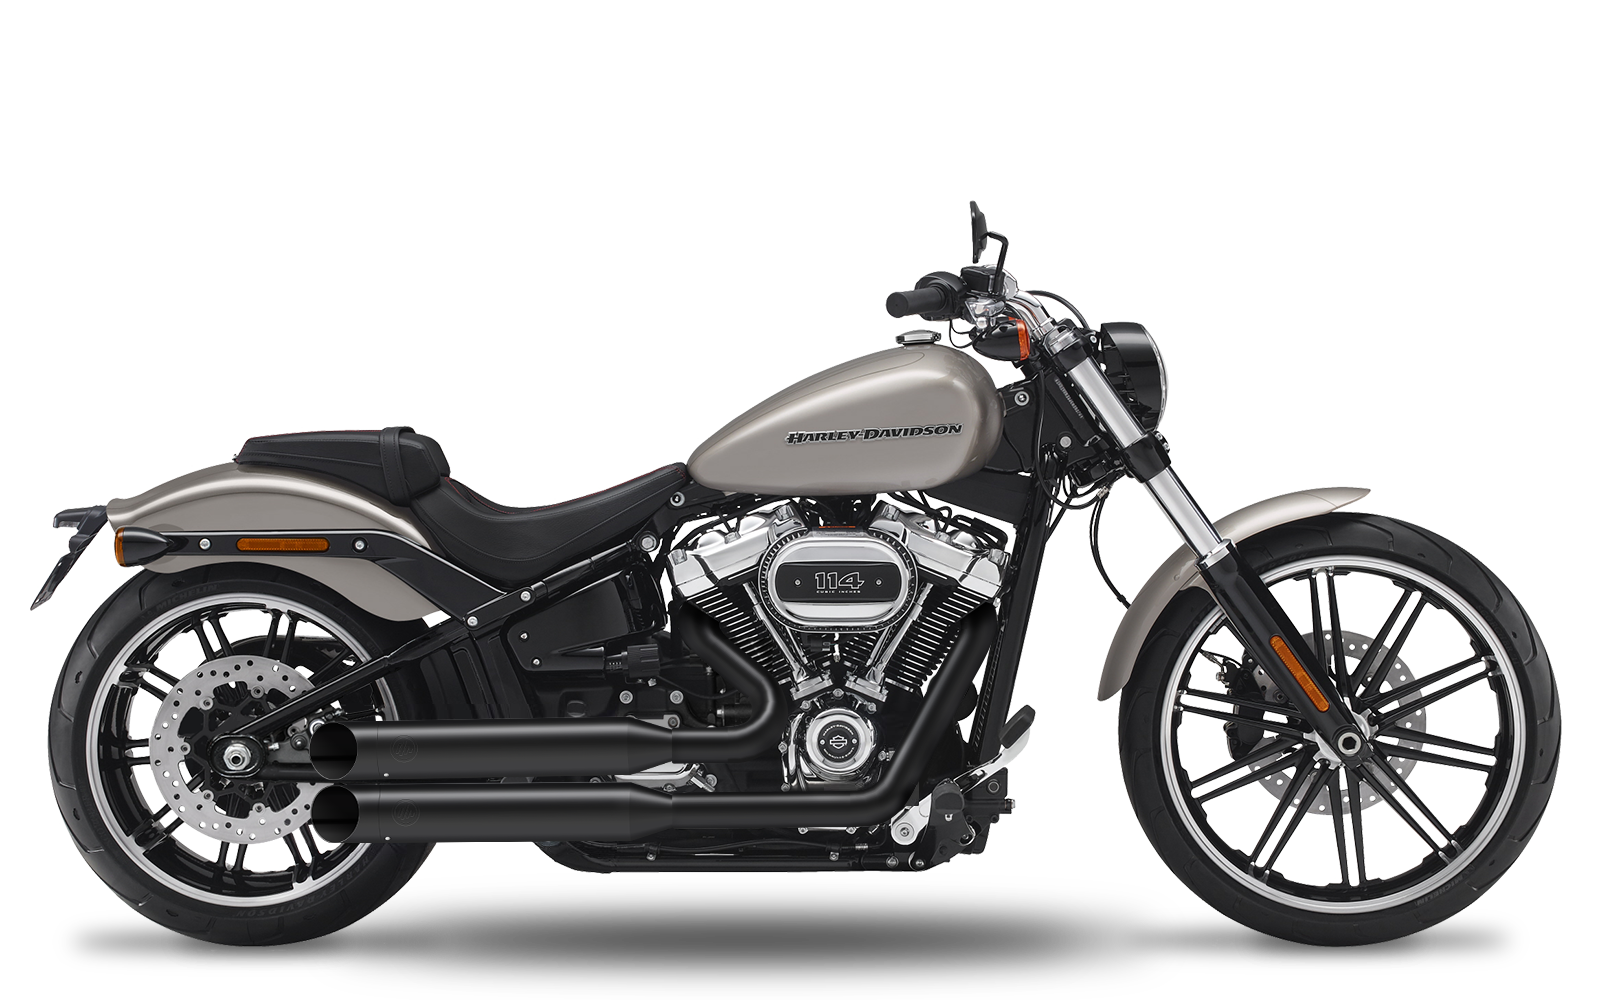 Softail - Fat Boy 114 / S - ME114 - 2021 - Complete systems